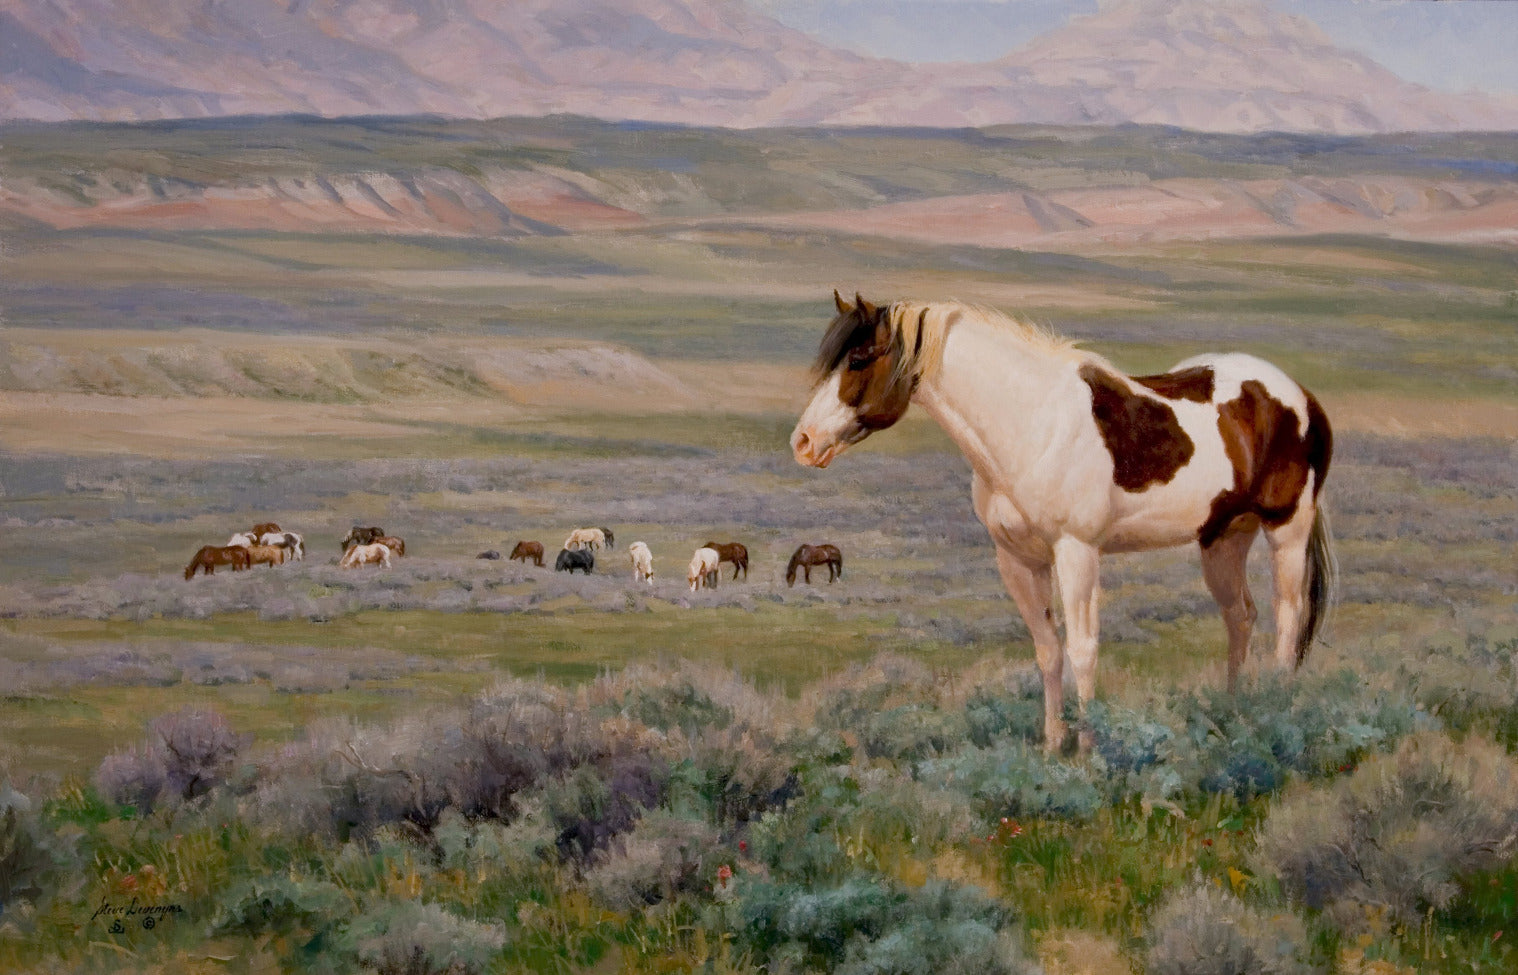 In the Last Wild Place, by Steve Devenyns, famous American Western Fine Artist Oil Painting. A painting depicting the beloved Wild Horses of the American West. Steve has been featured in the Buffalo Bill Art Show, Prix de West Art Show, Eiteljorg Museum, Quest for the West Art Show, and National Museum of Wildlife Art.